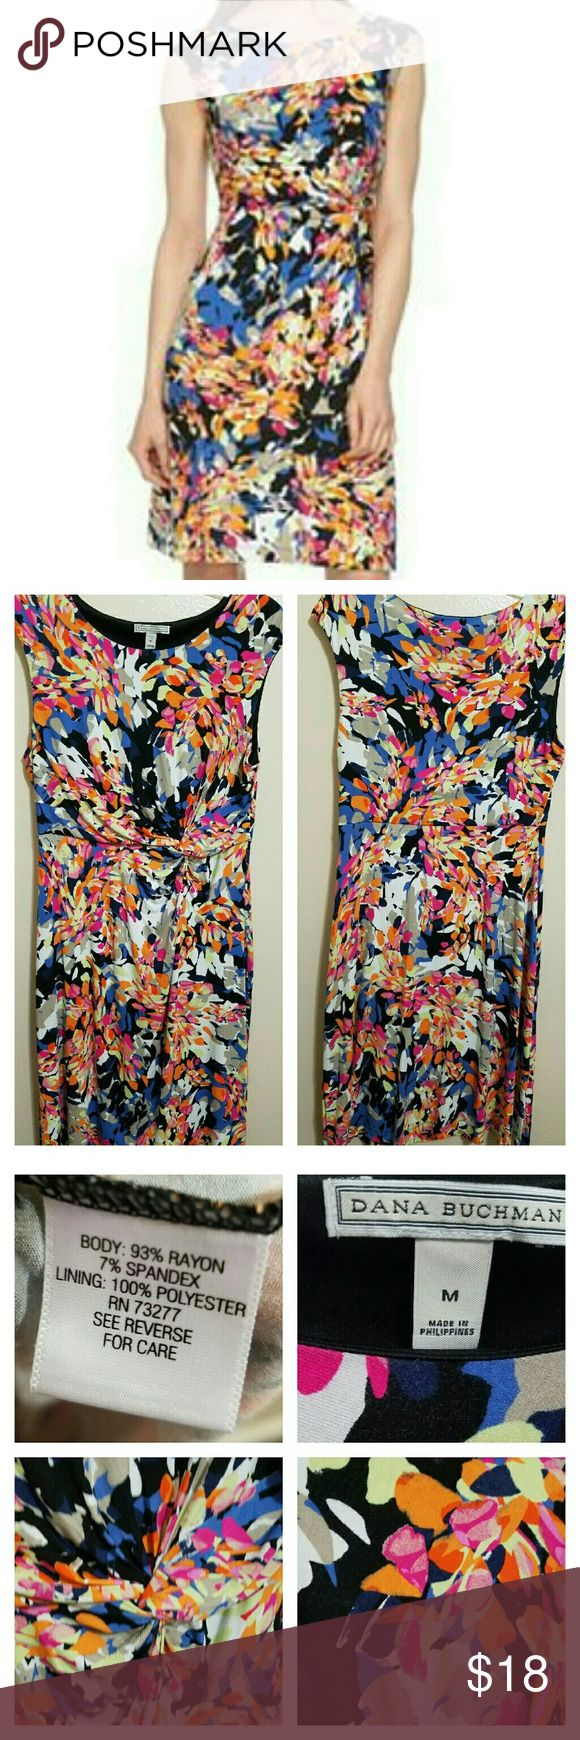 💘JUST IN!💘Dana Buchman Knot Front Dress WORN ONCE on Easter for less than 4 hours! Cute brightly colored floral print dress with what could be described as a twist knot in the front to help define your waist. Material is stretchy and very comfortable! Darkest color is black. The fit is TTS, in my opinion and very complimentary on those with a curvy figure! No holes, rips, or stains. Dana Buchman Dresses